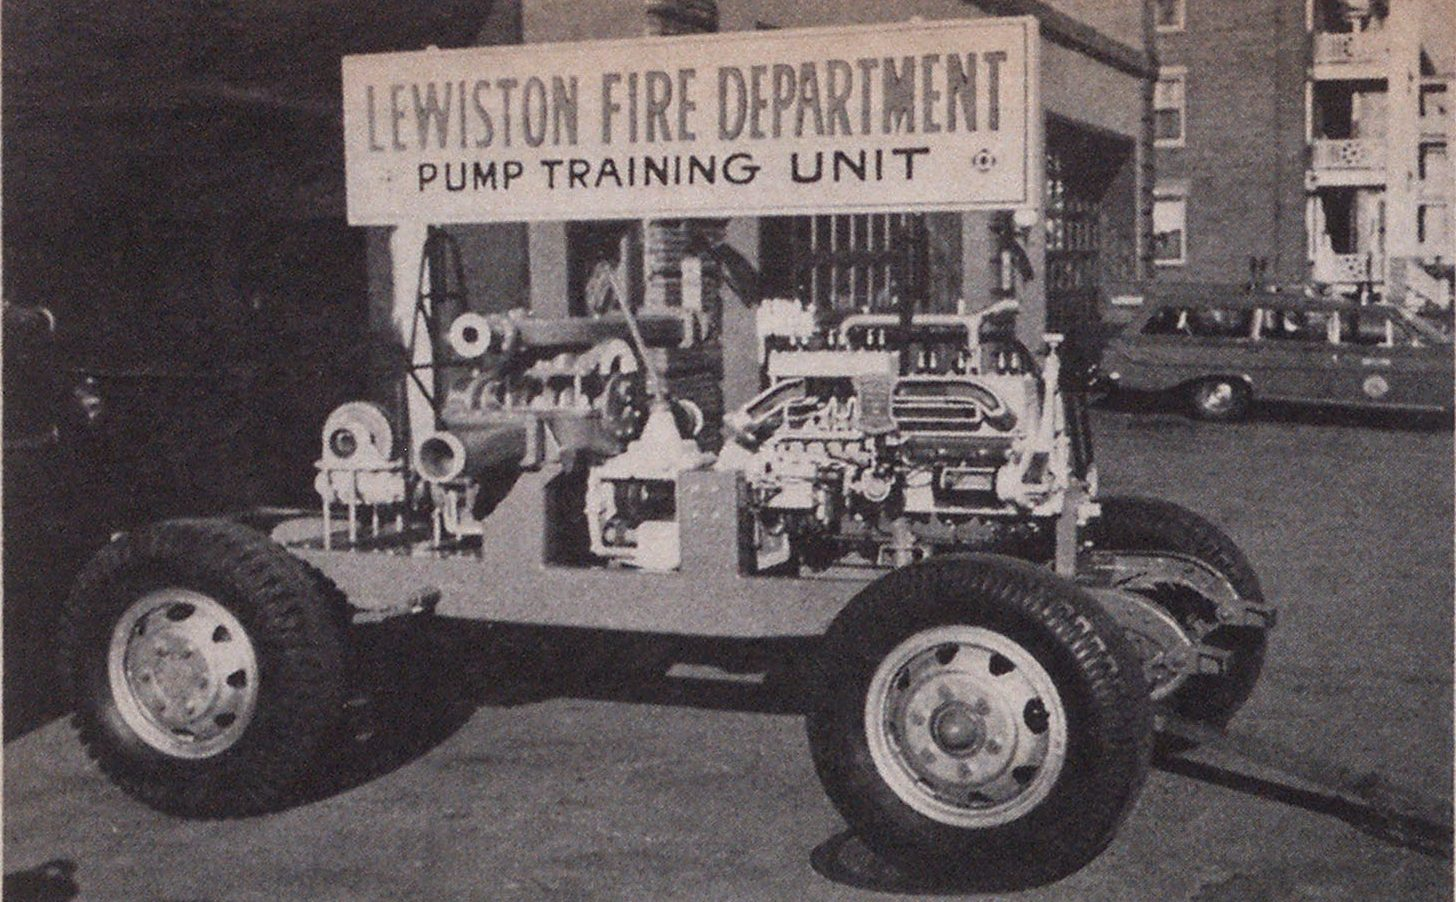 Old Pumper Given Second Life As Low-Cost Cutaway Trainer